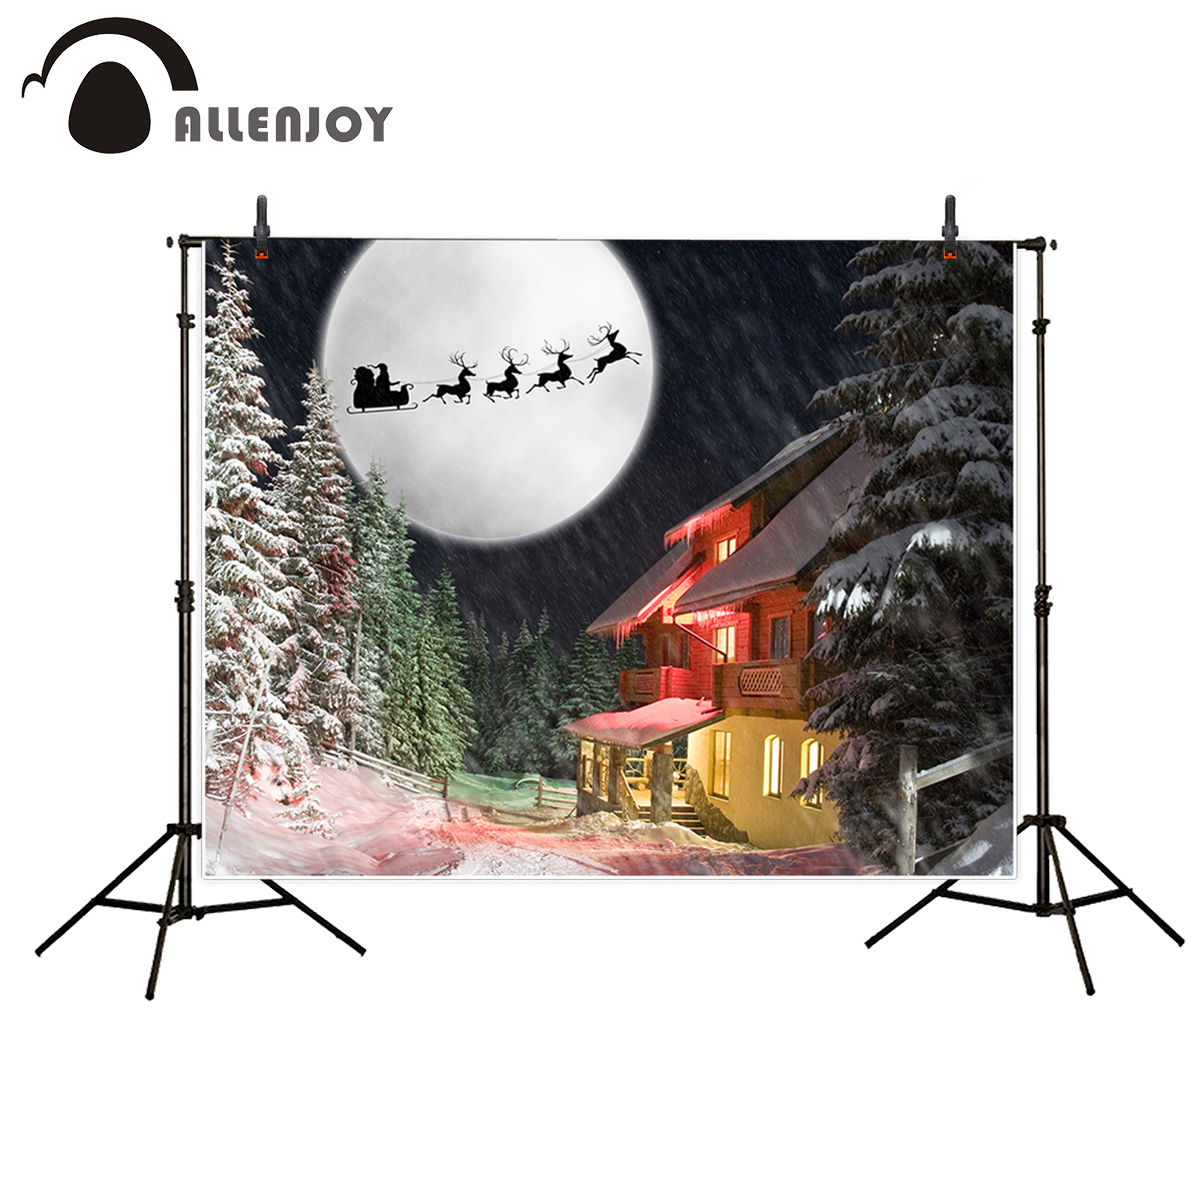 Allenjoy vinyl photographic background Forest snow house full moon elk Christmas backdrop photocall professional customized